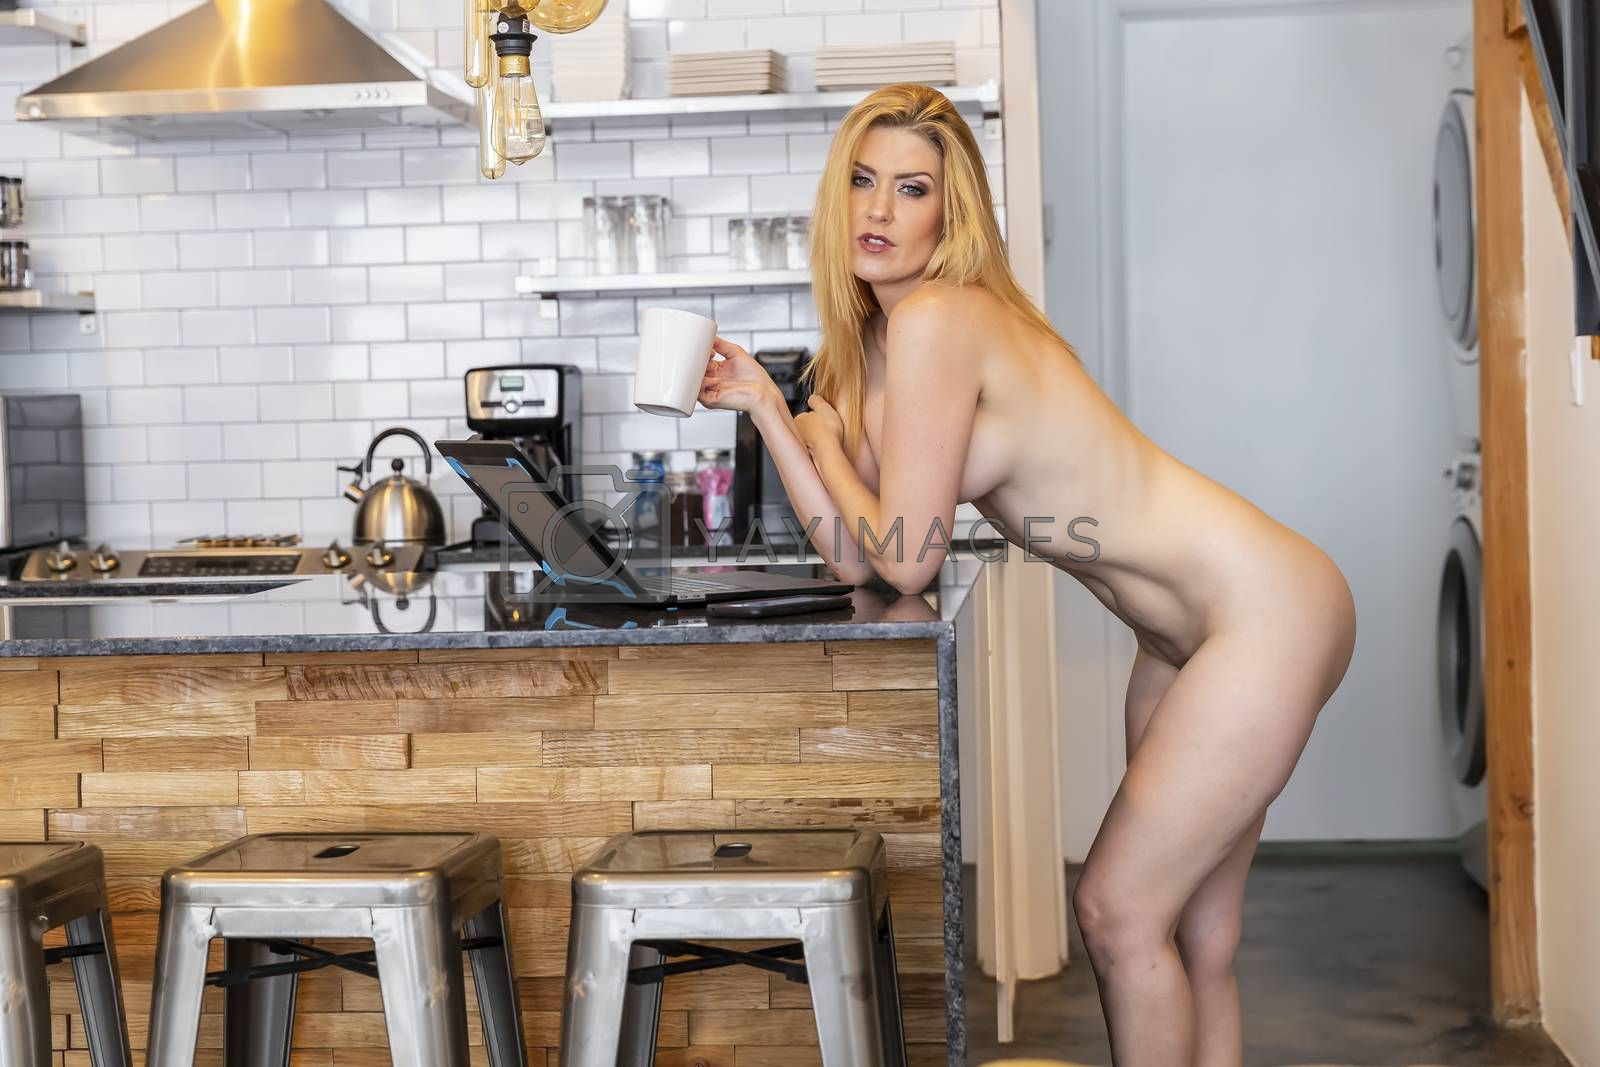 Royalty free image of Gorgeous Blonde Model Poses Nude While Working On A Computer In A Home Environment by actionsports